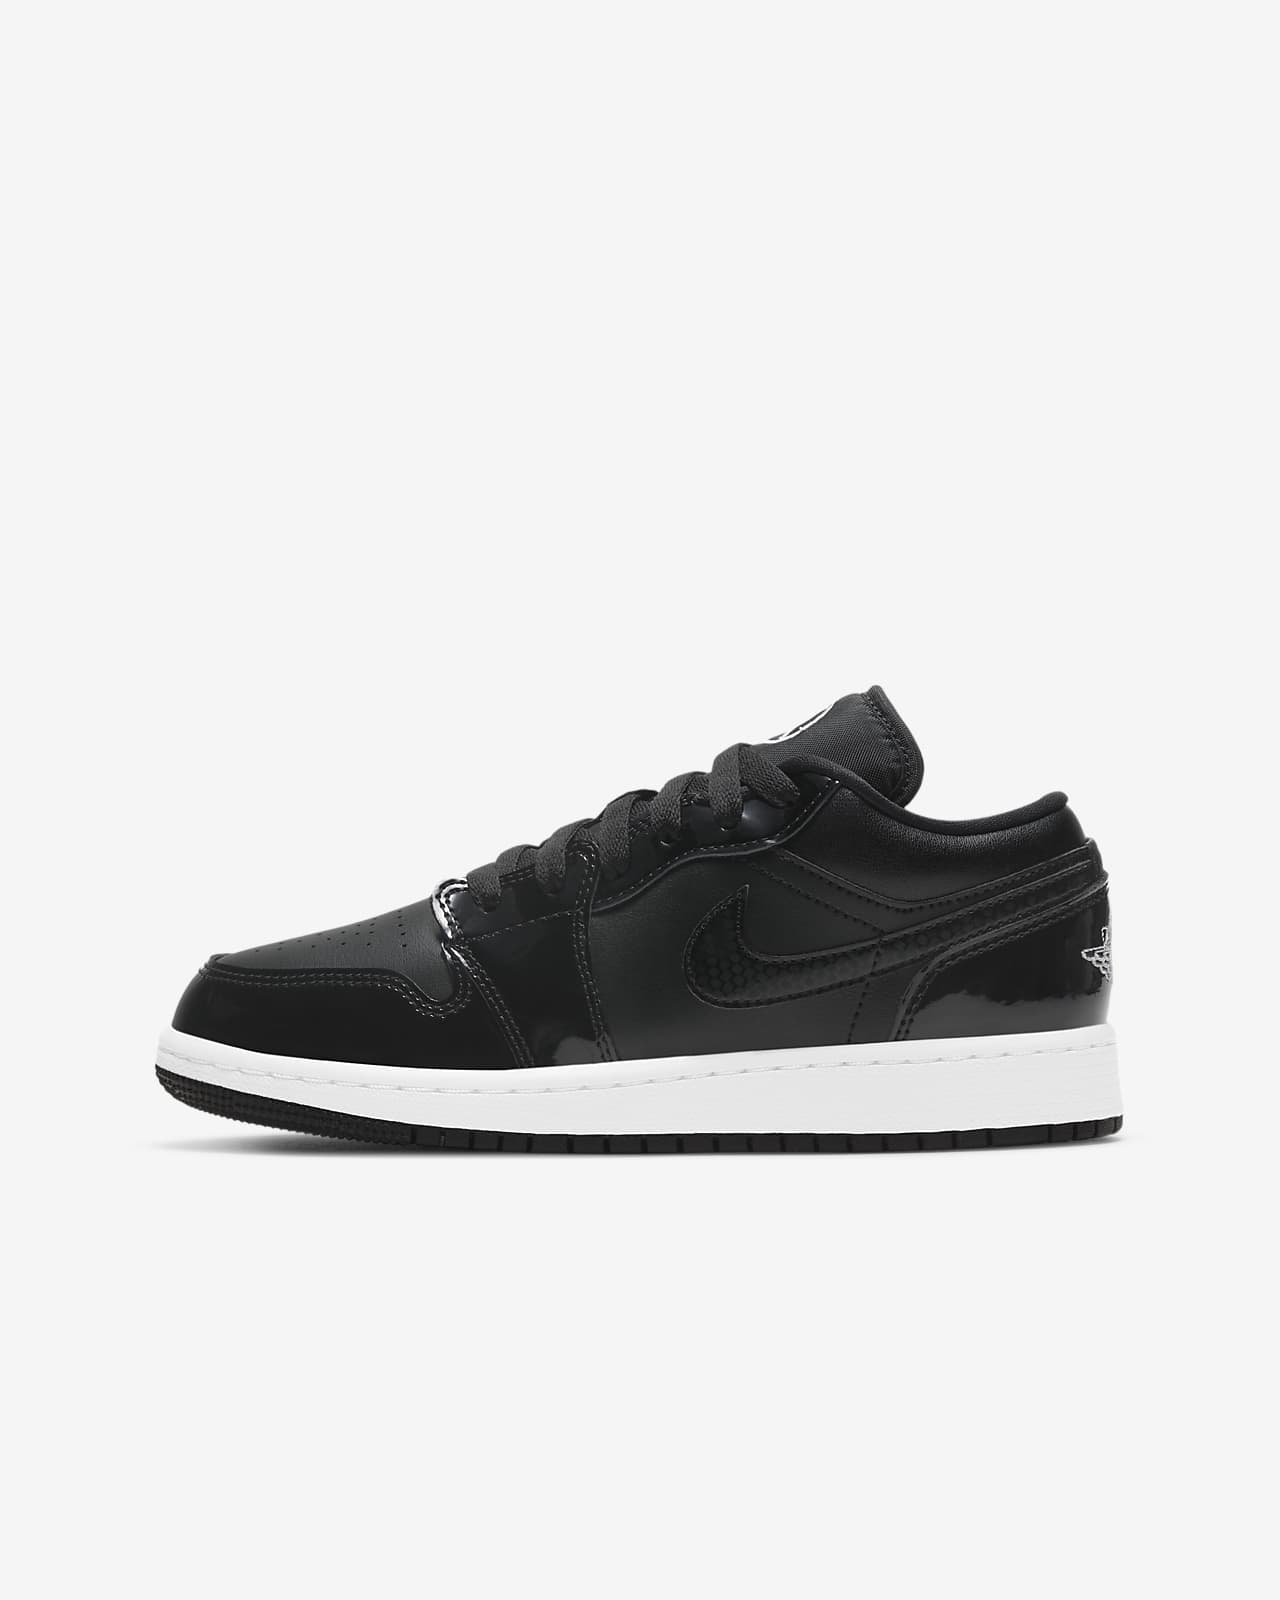 Air Jordan 1 Low SE Older Kids' Shoe